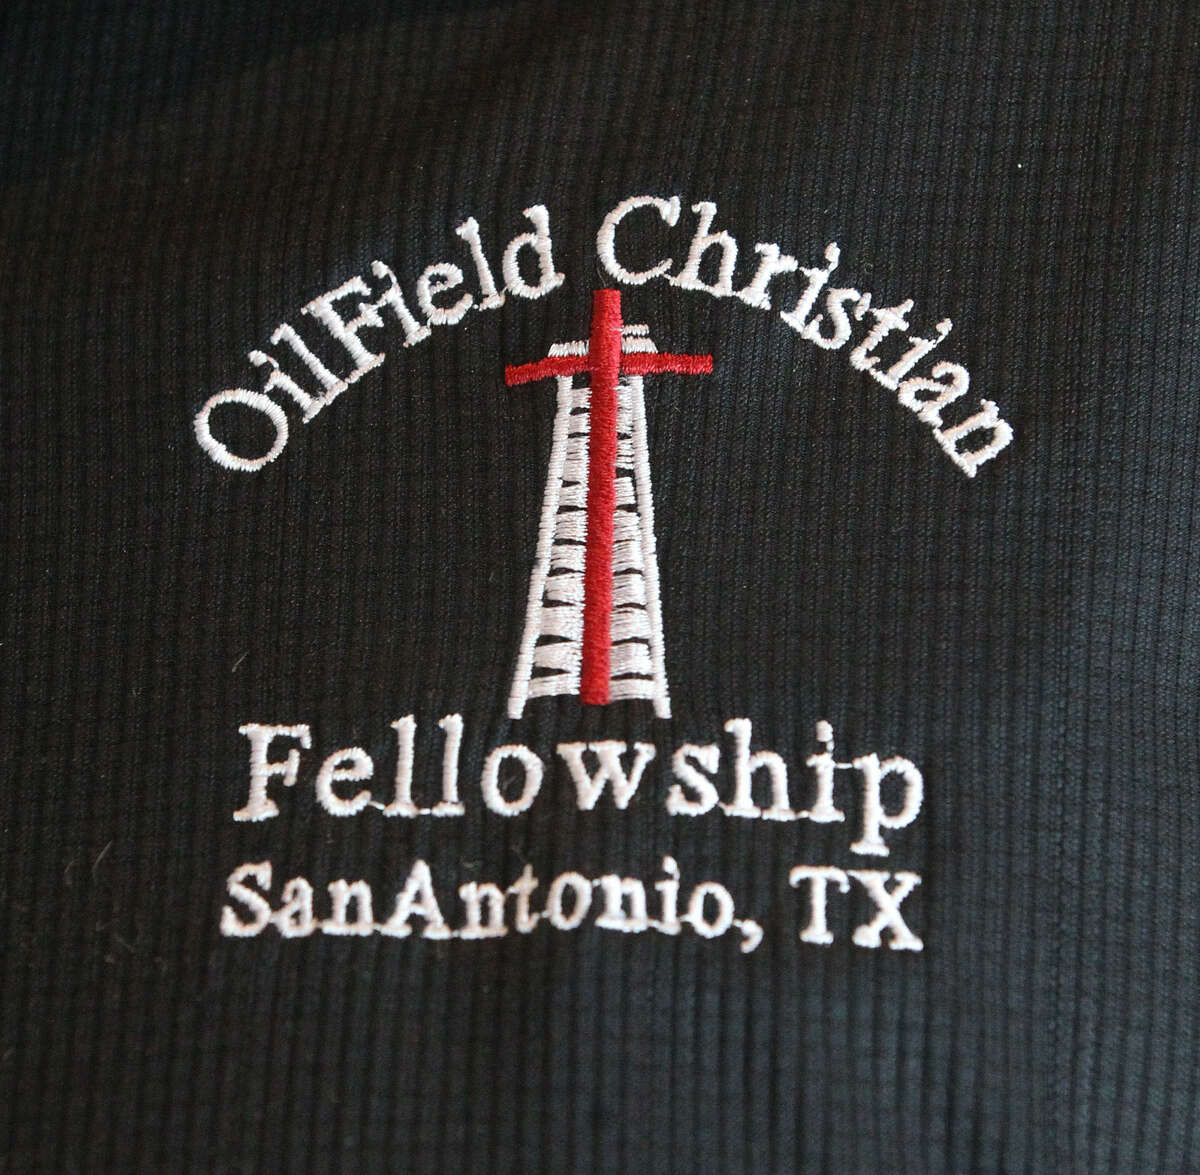 This is the insignia of the local Oilfield Christian Fellowship.